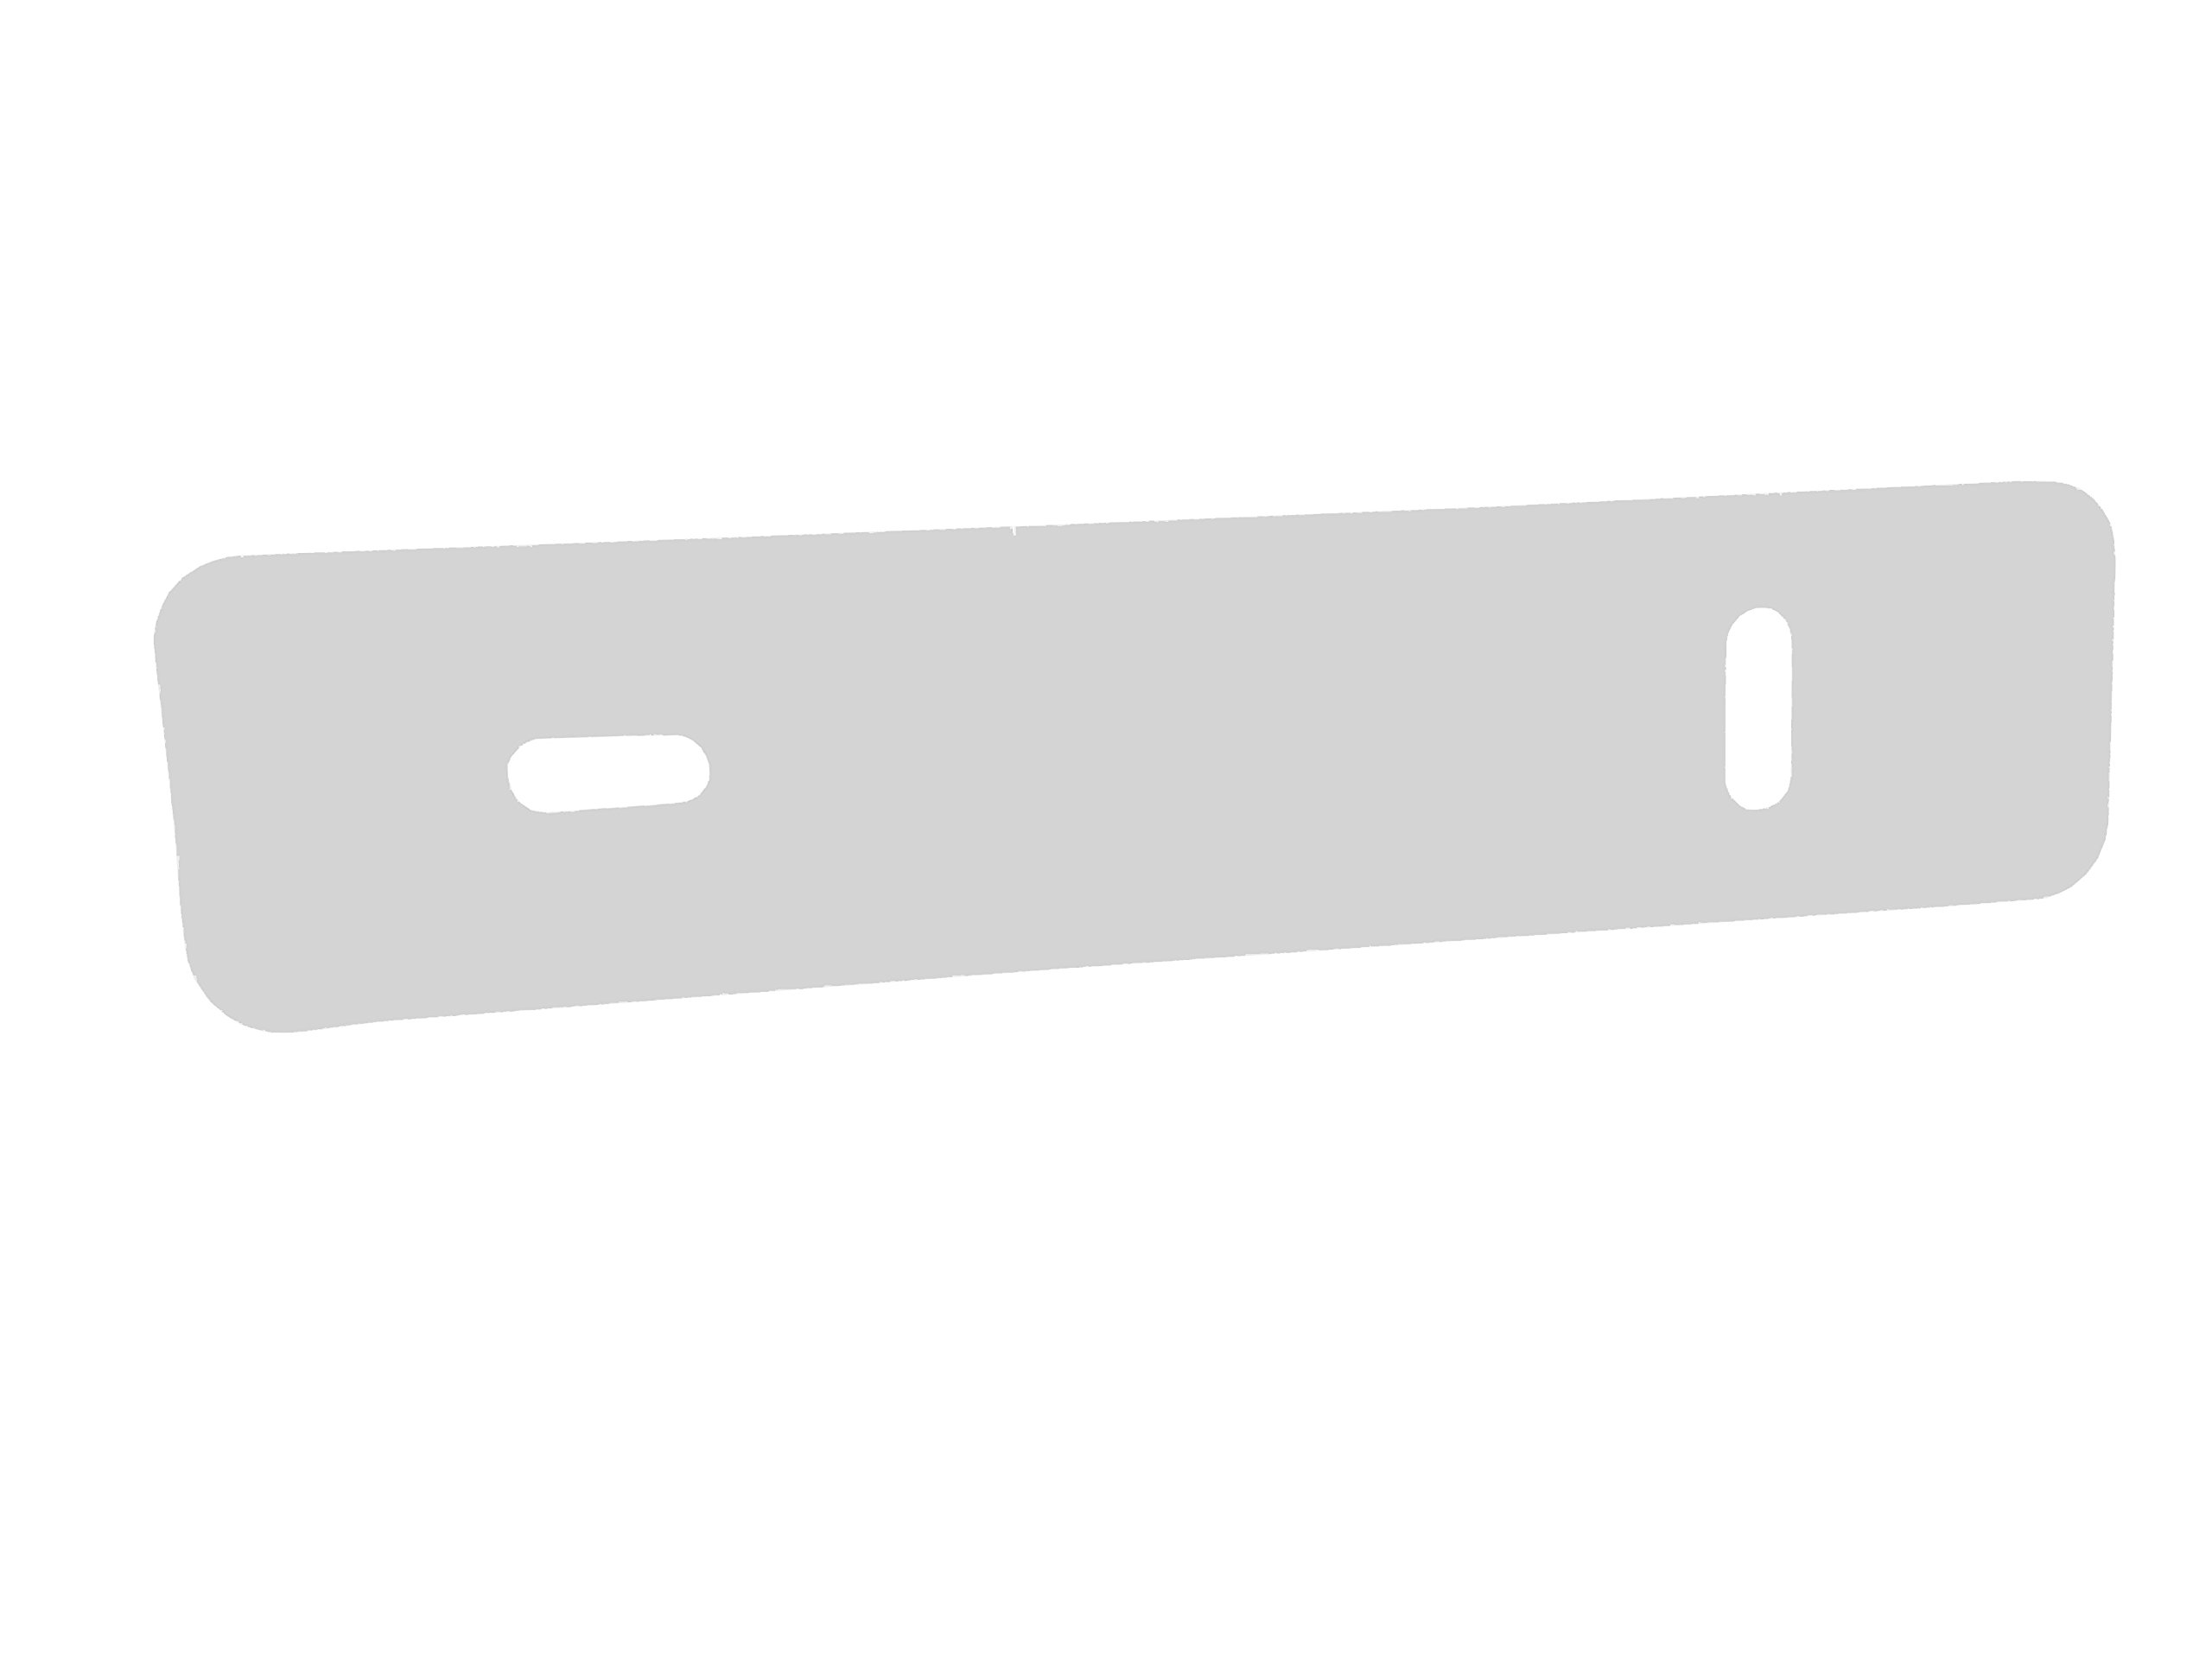 Rehabilitation Advantage High-Density Poly Transfer Board 1/2'' Thick X 34'' Long with 2 Hand Holes